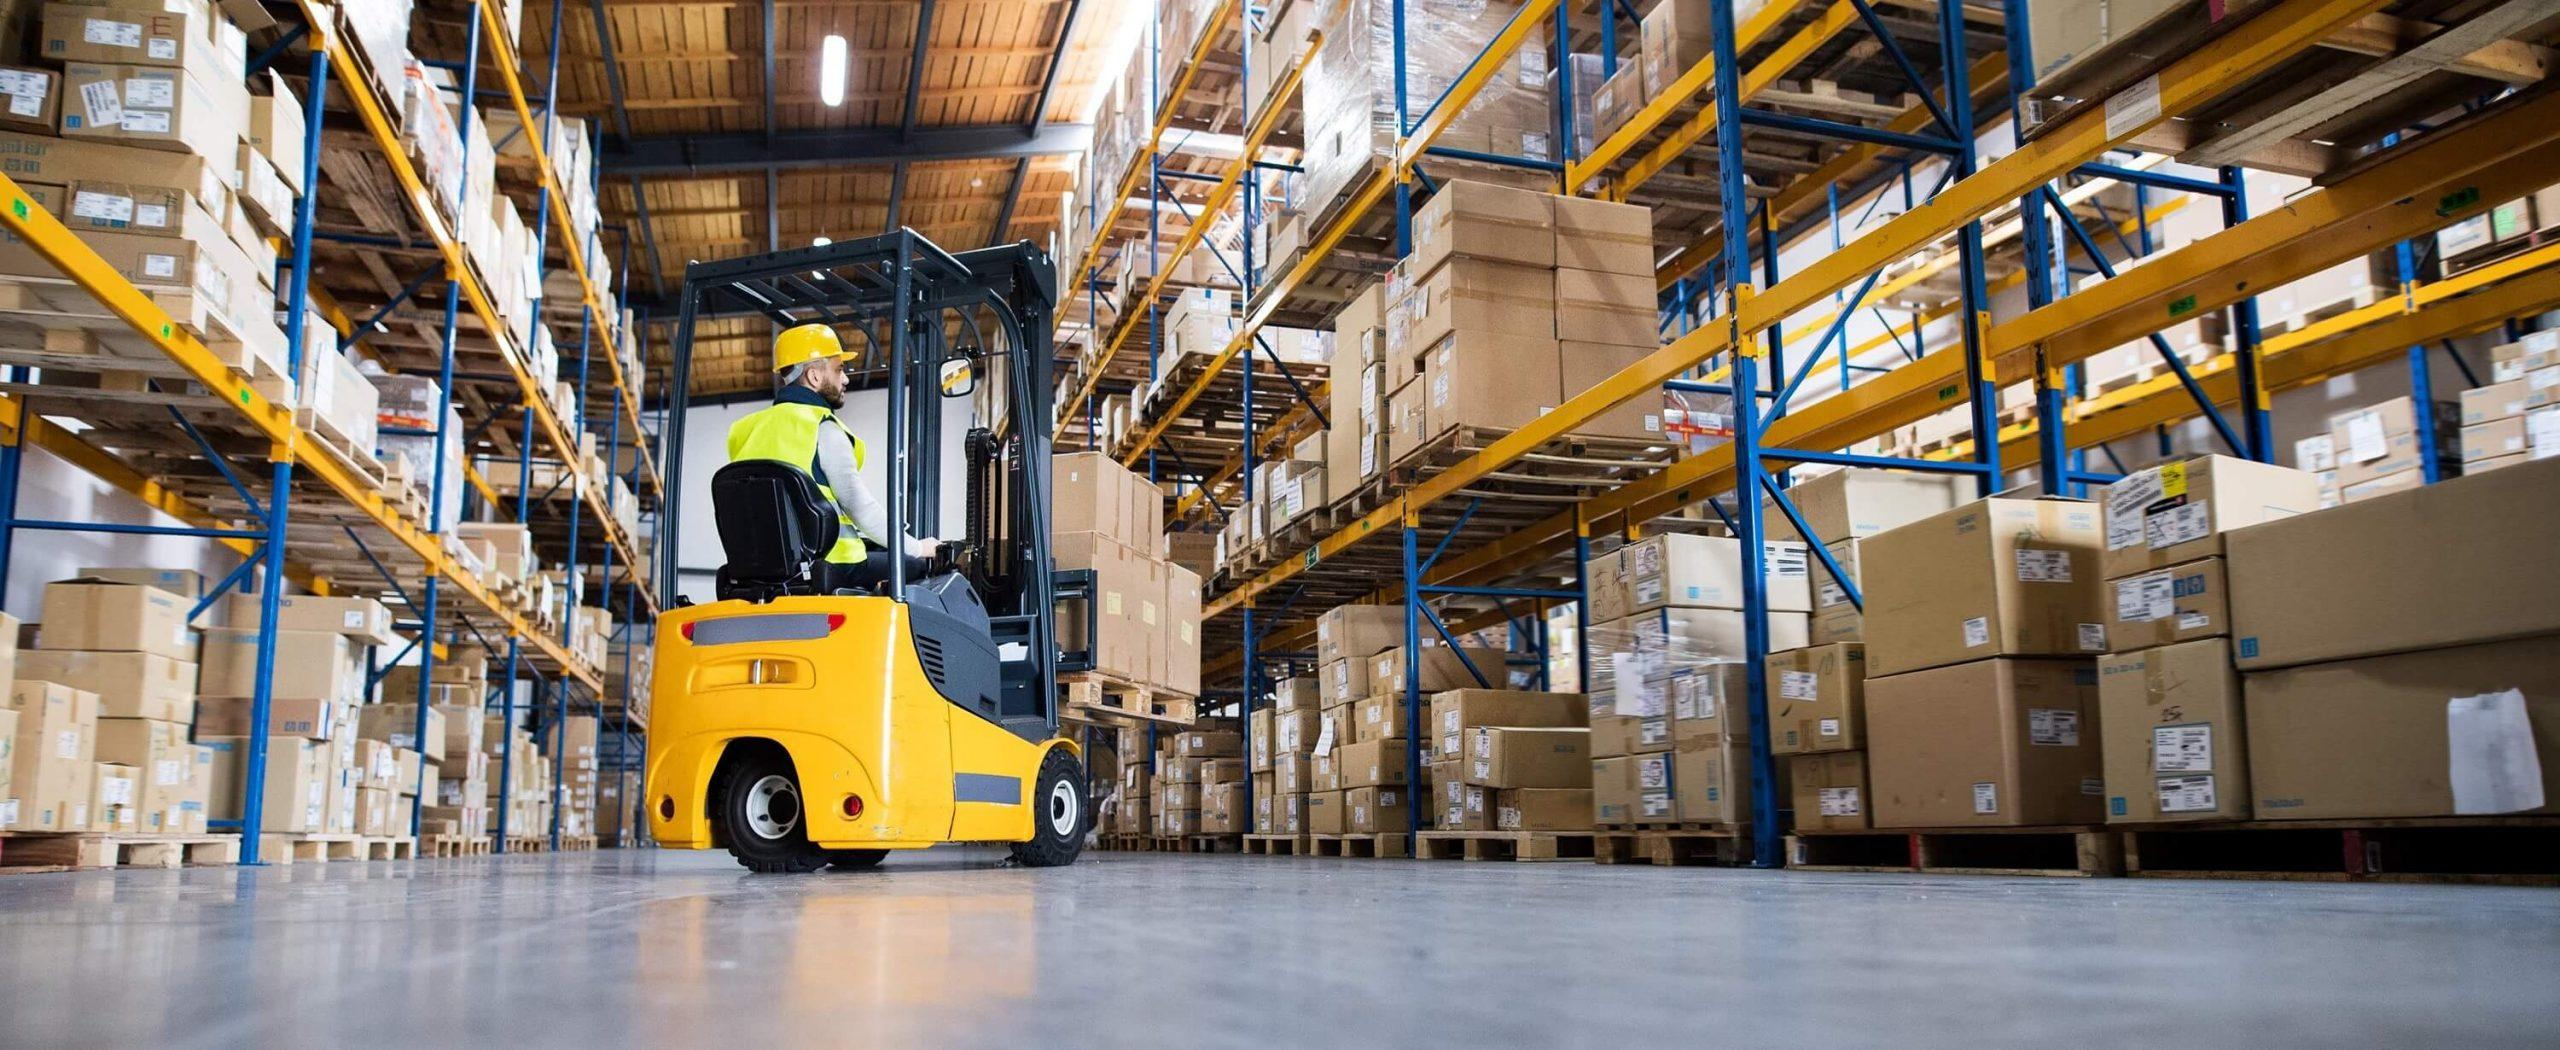 Rugged_computers_warehouse_forklift_small